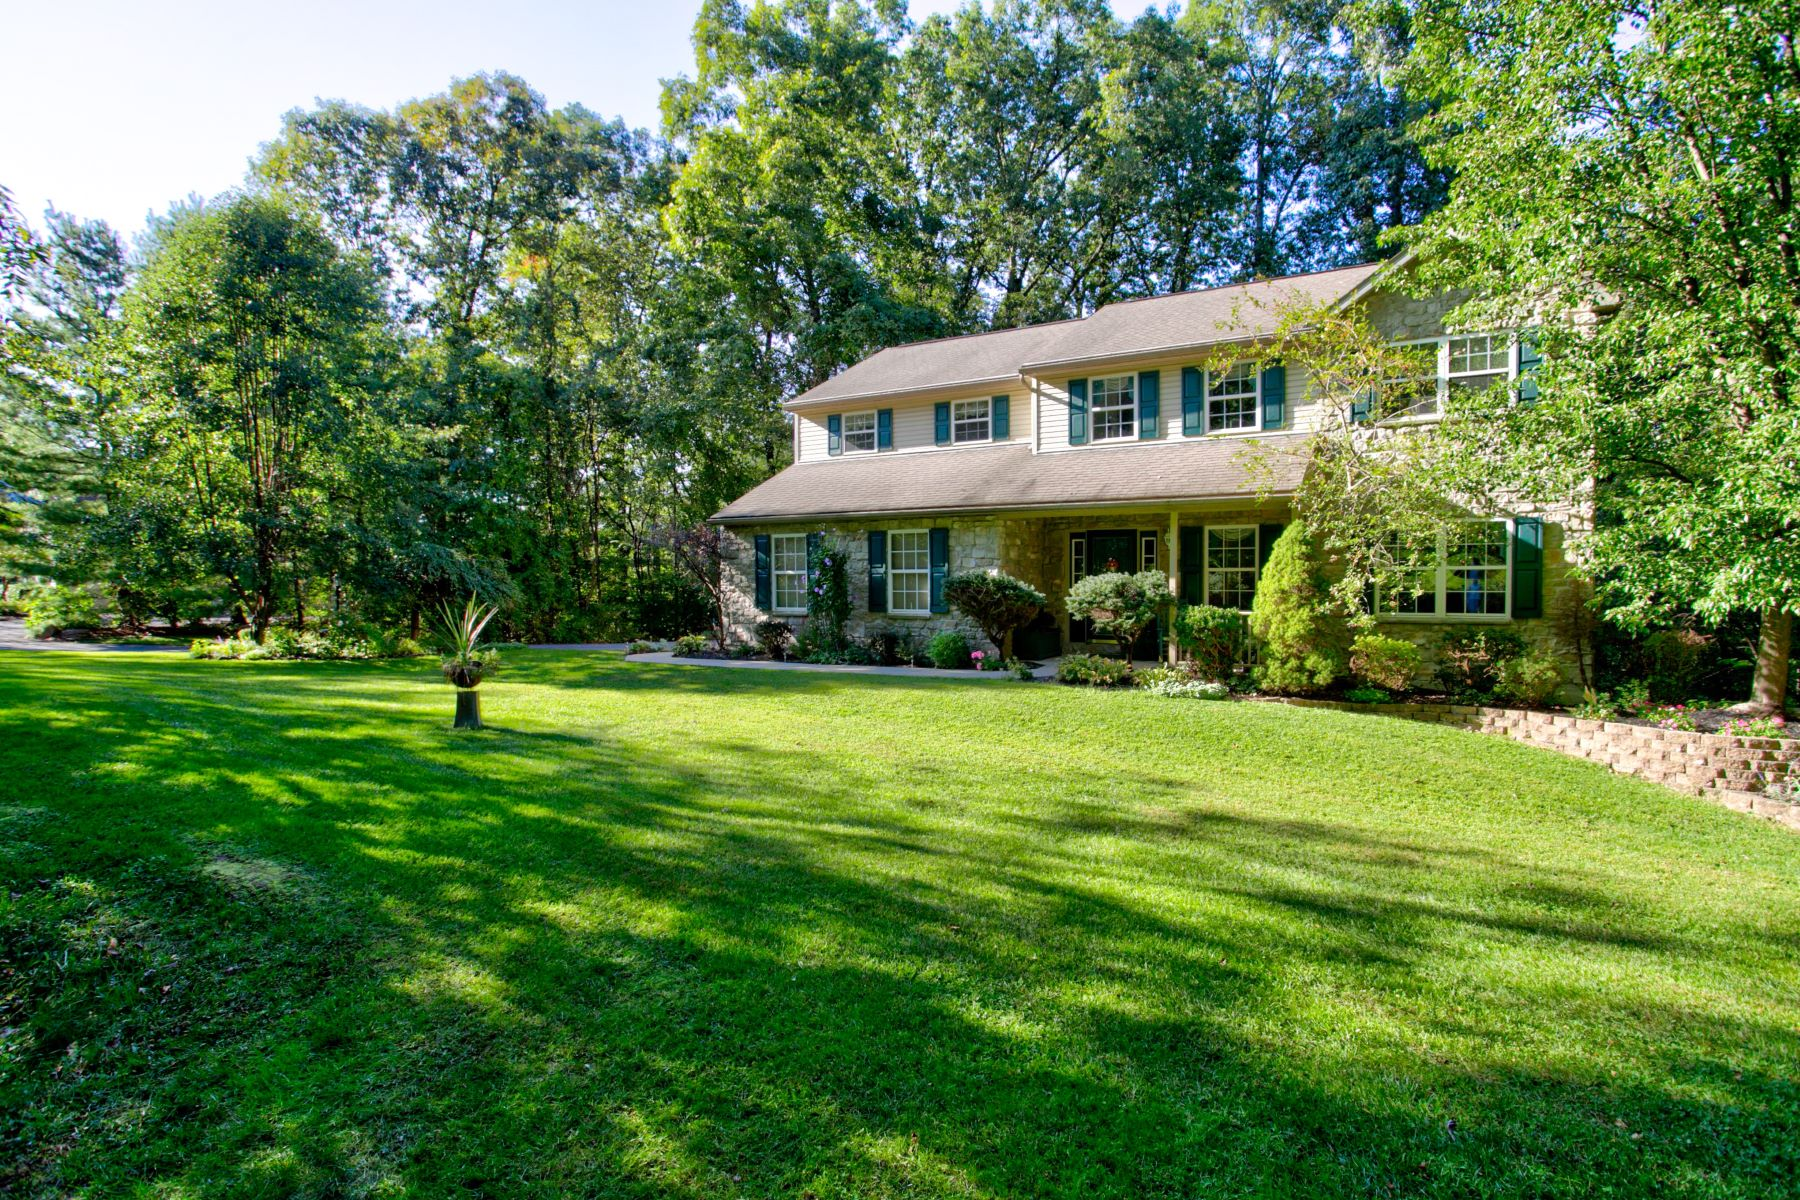 Single Family Homes for Sale at 133 Hartz Store Road Mohnton, Pennsylvania 19540 United States